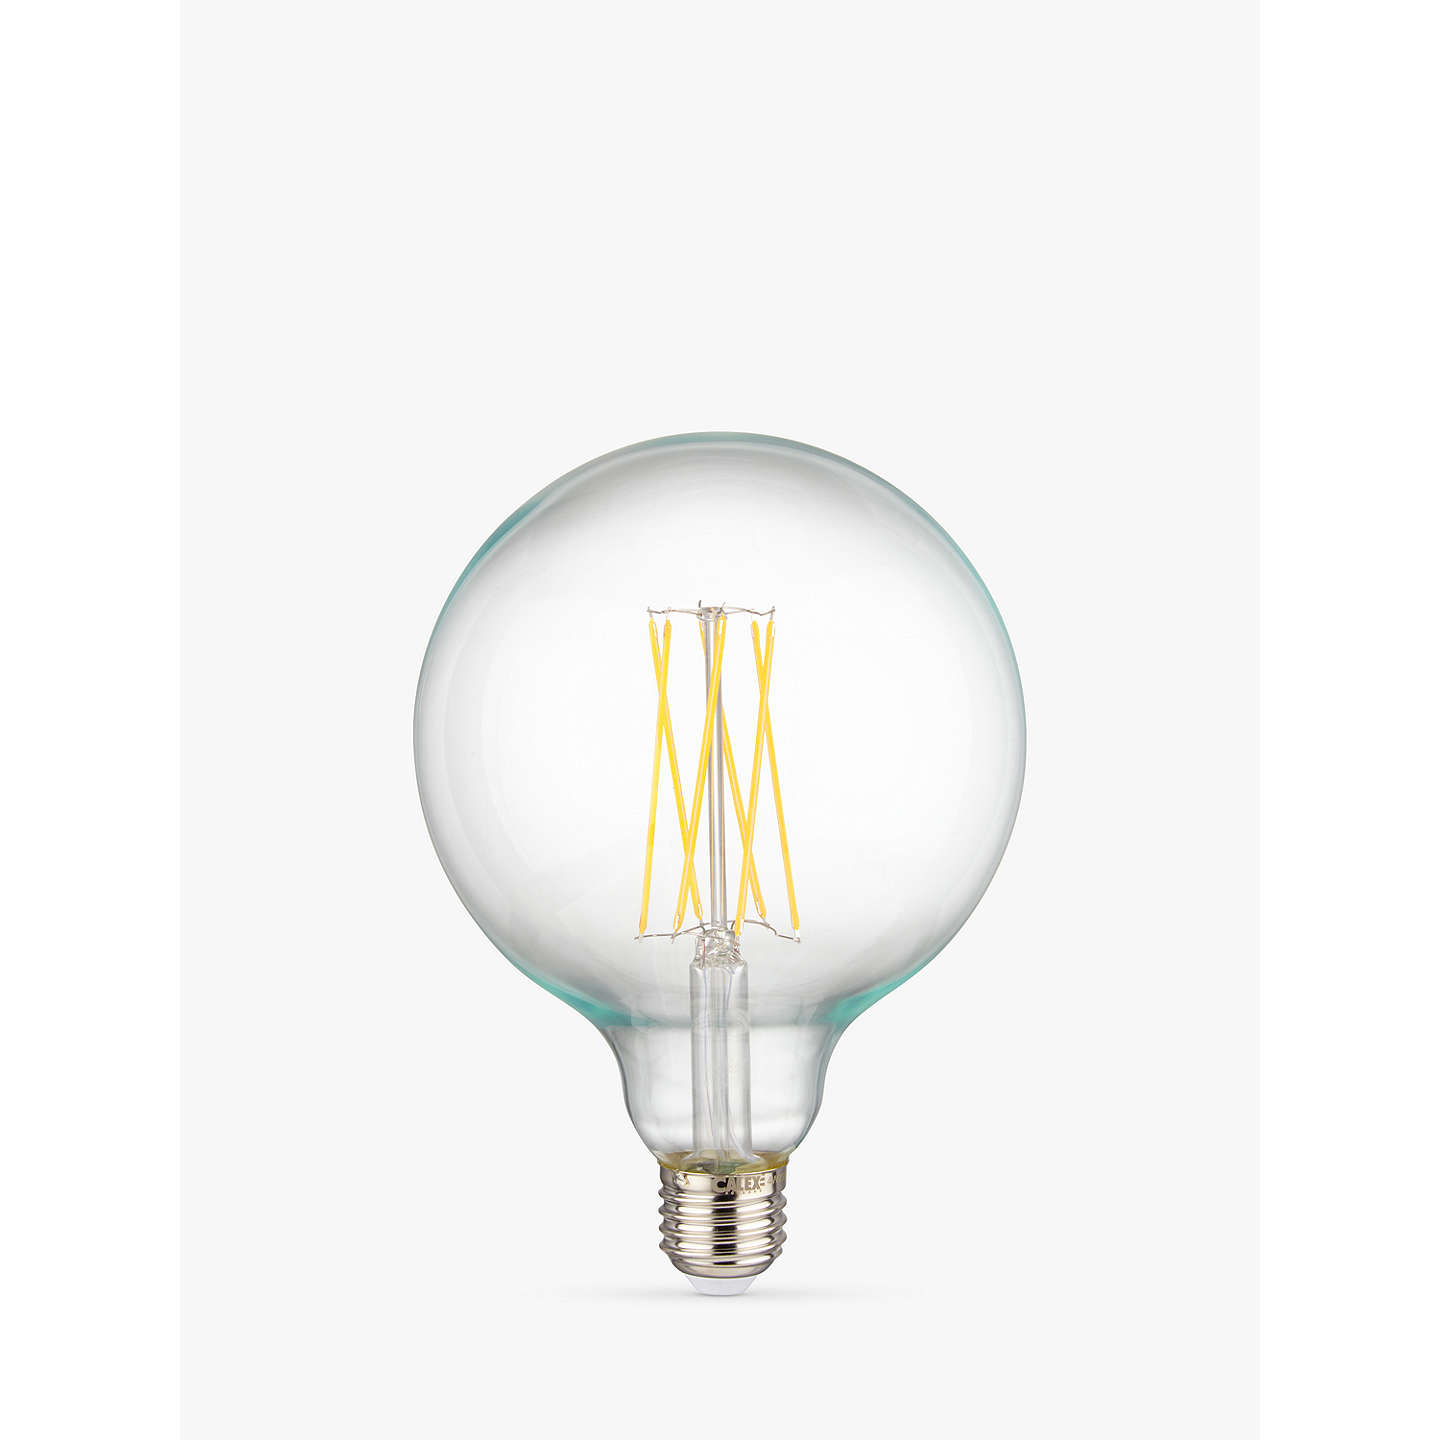 free royalty vector light hd illustration icon bulb design image flat minimal style modern stock